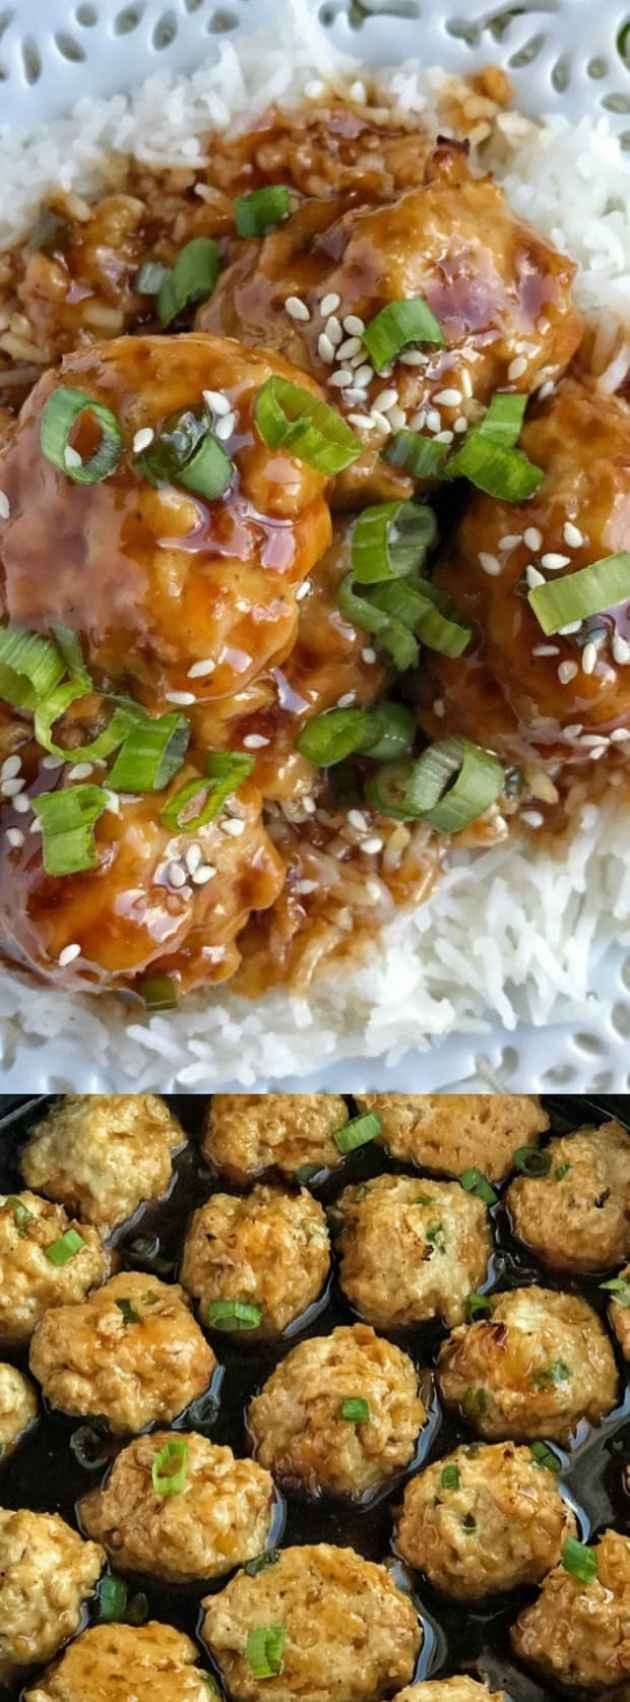 Pineapple Teriyaki Chicken Meatballs Longpin